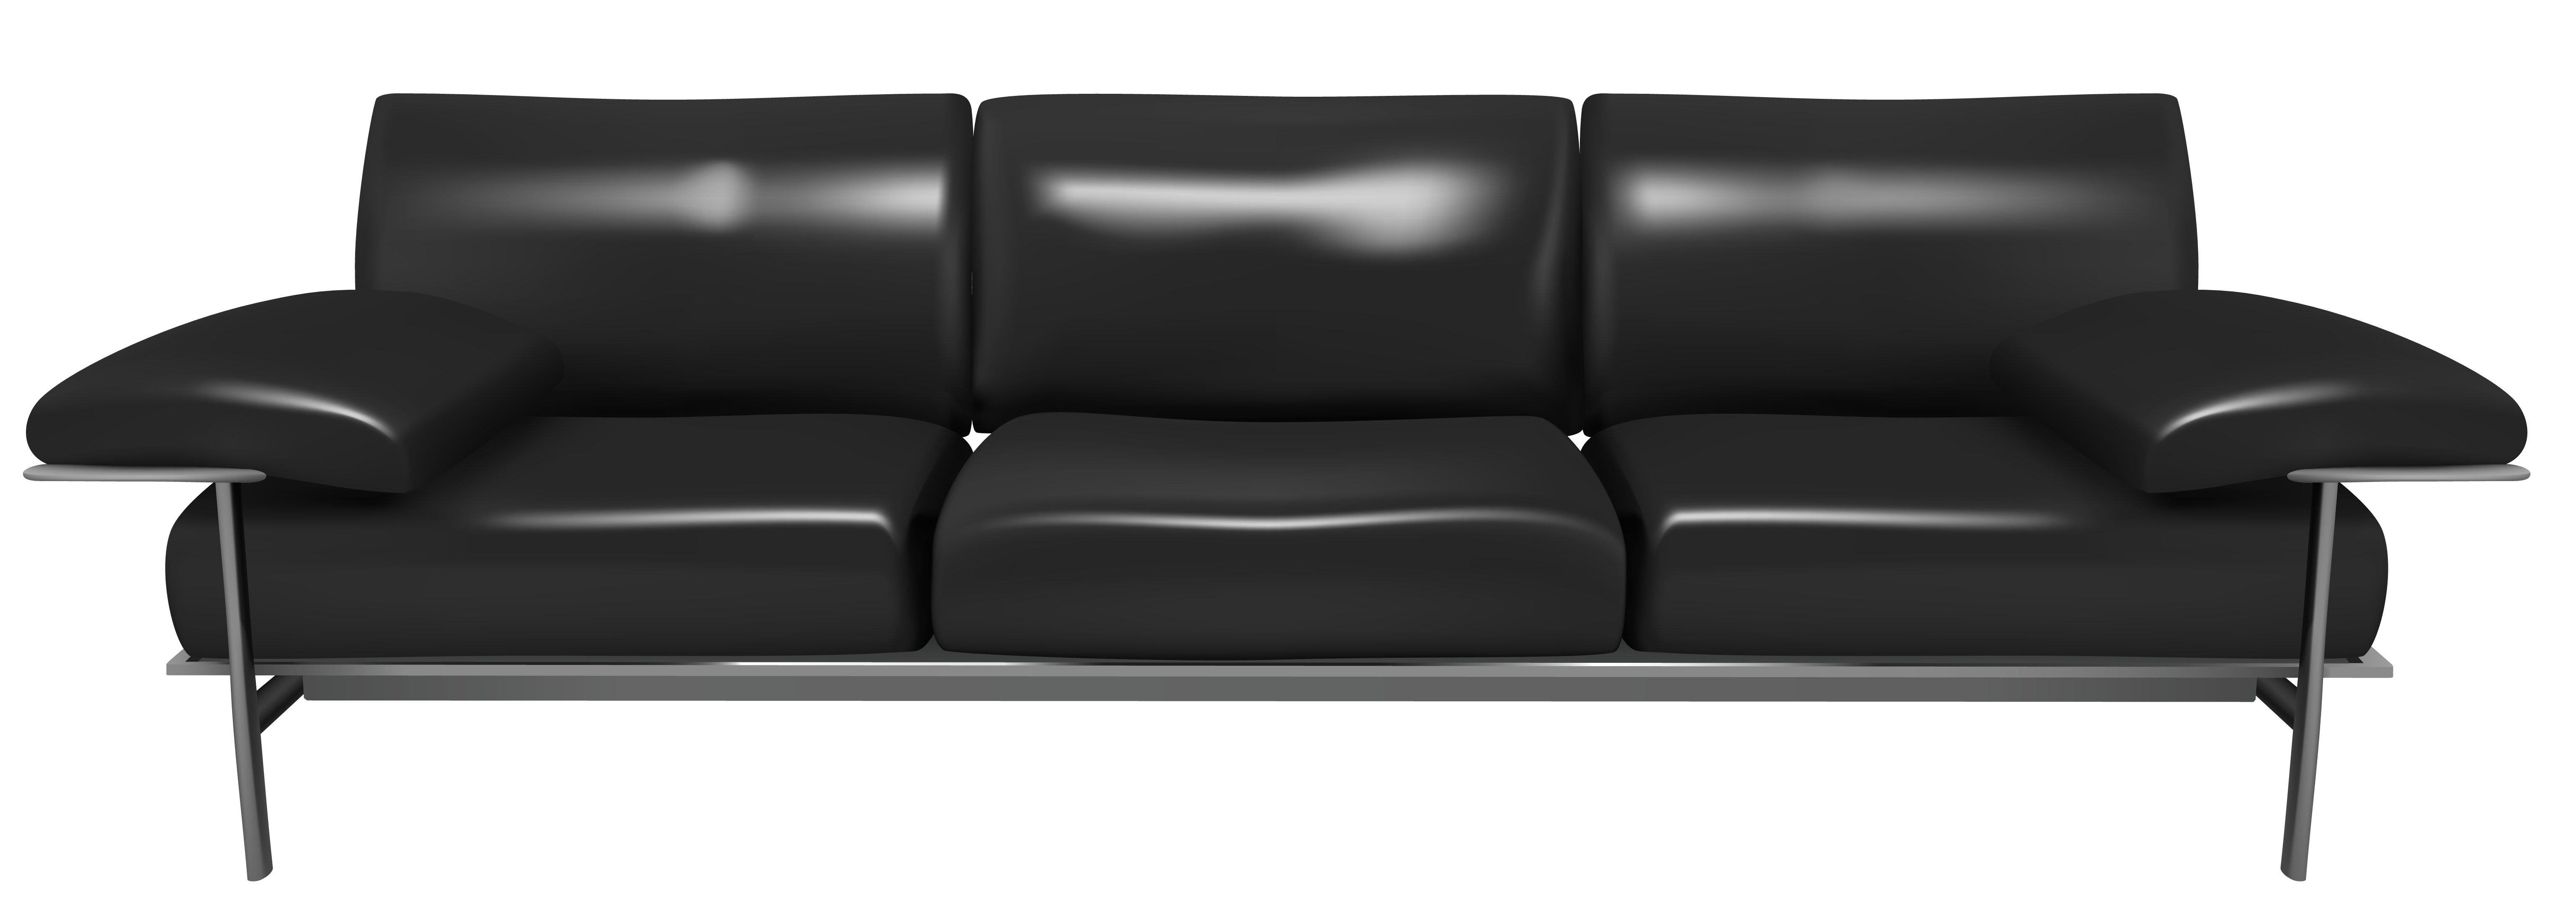 Furniture clipart couch. Transparent black png gallery